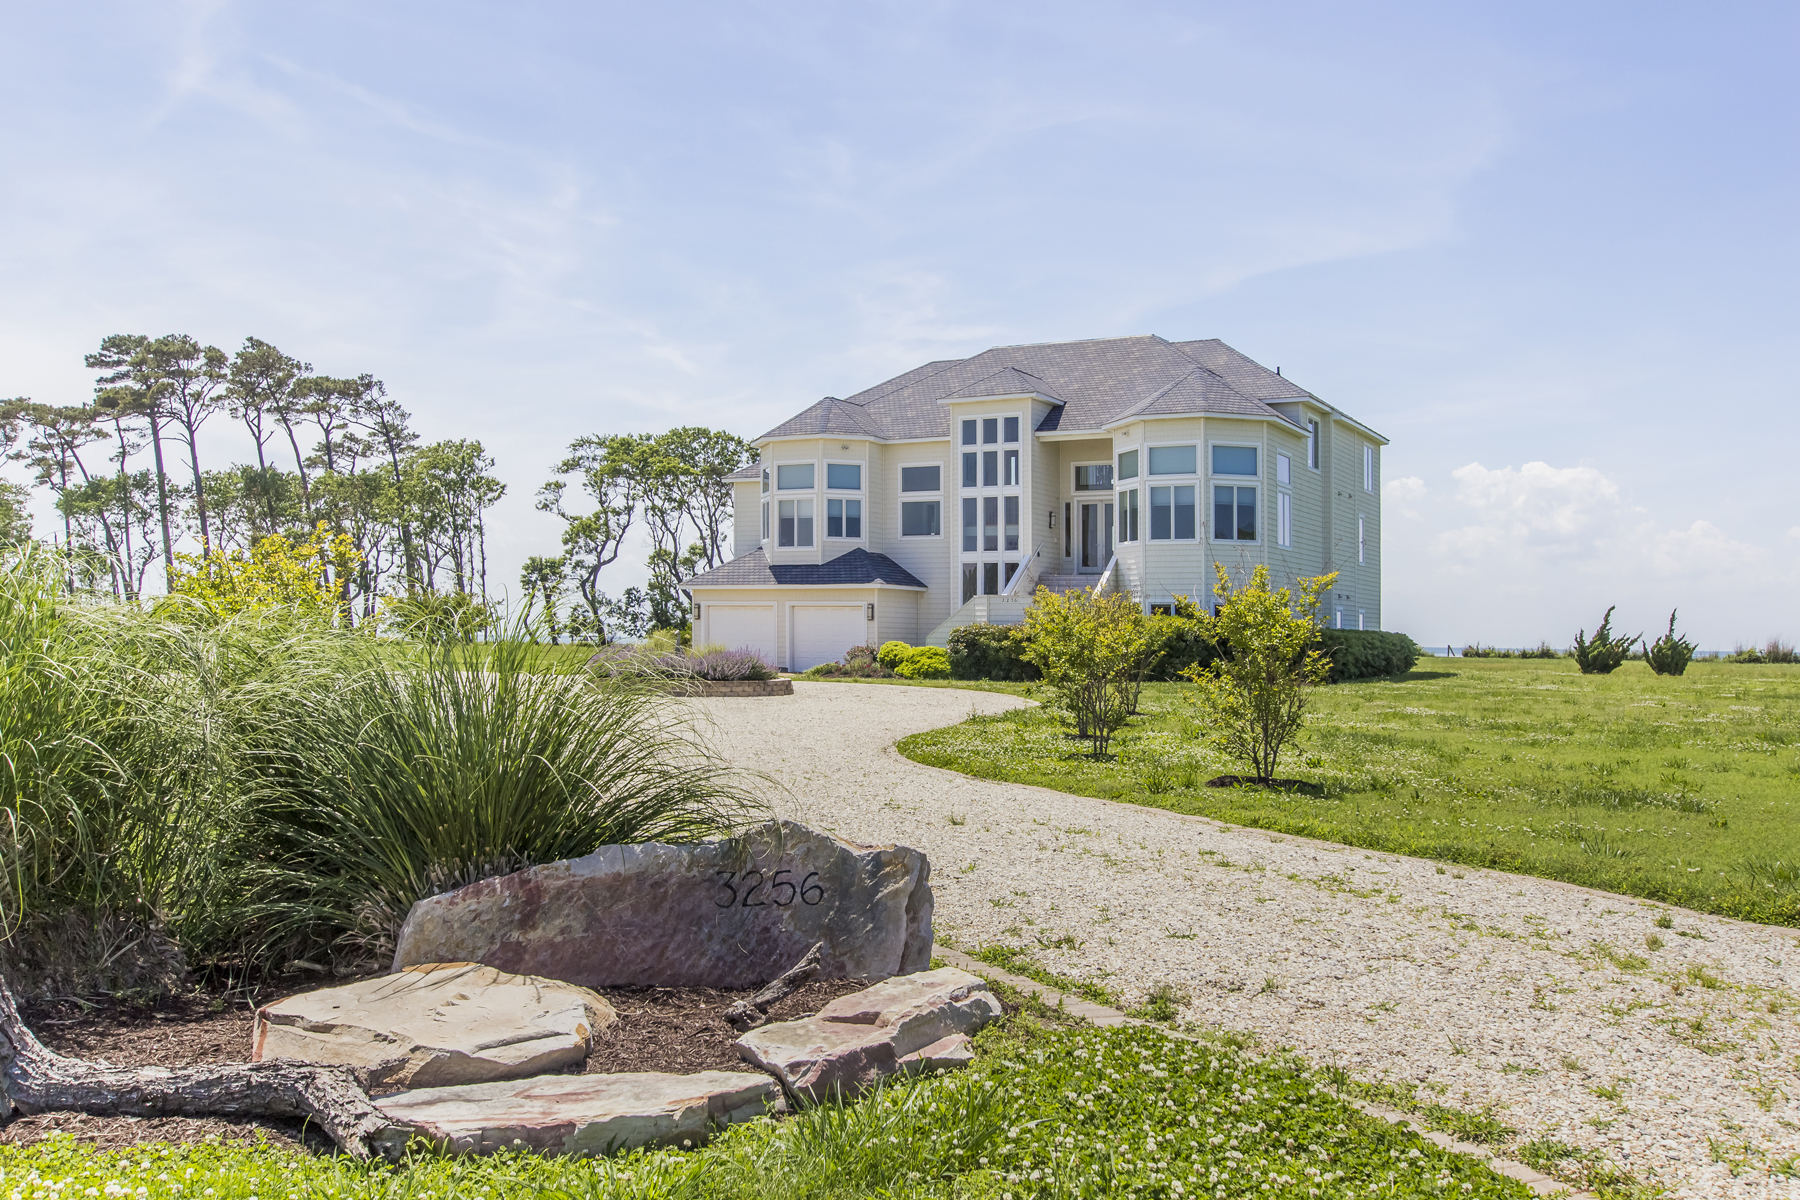 Single Family Home for Sale at Sunset Shores 3256 Sunset Way Machipongo, Virginia 23405 United States